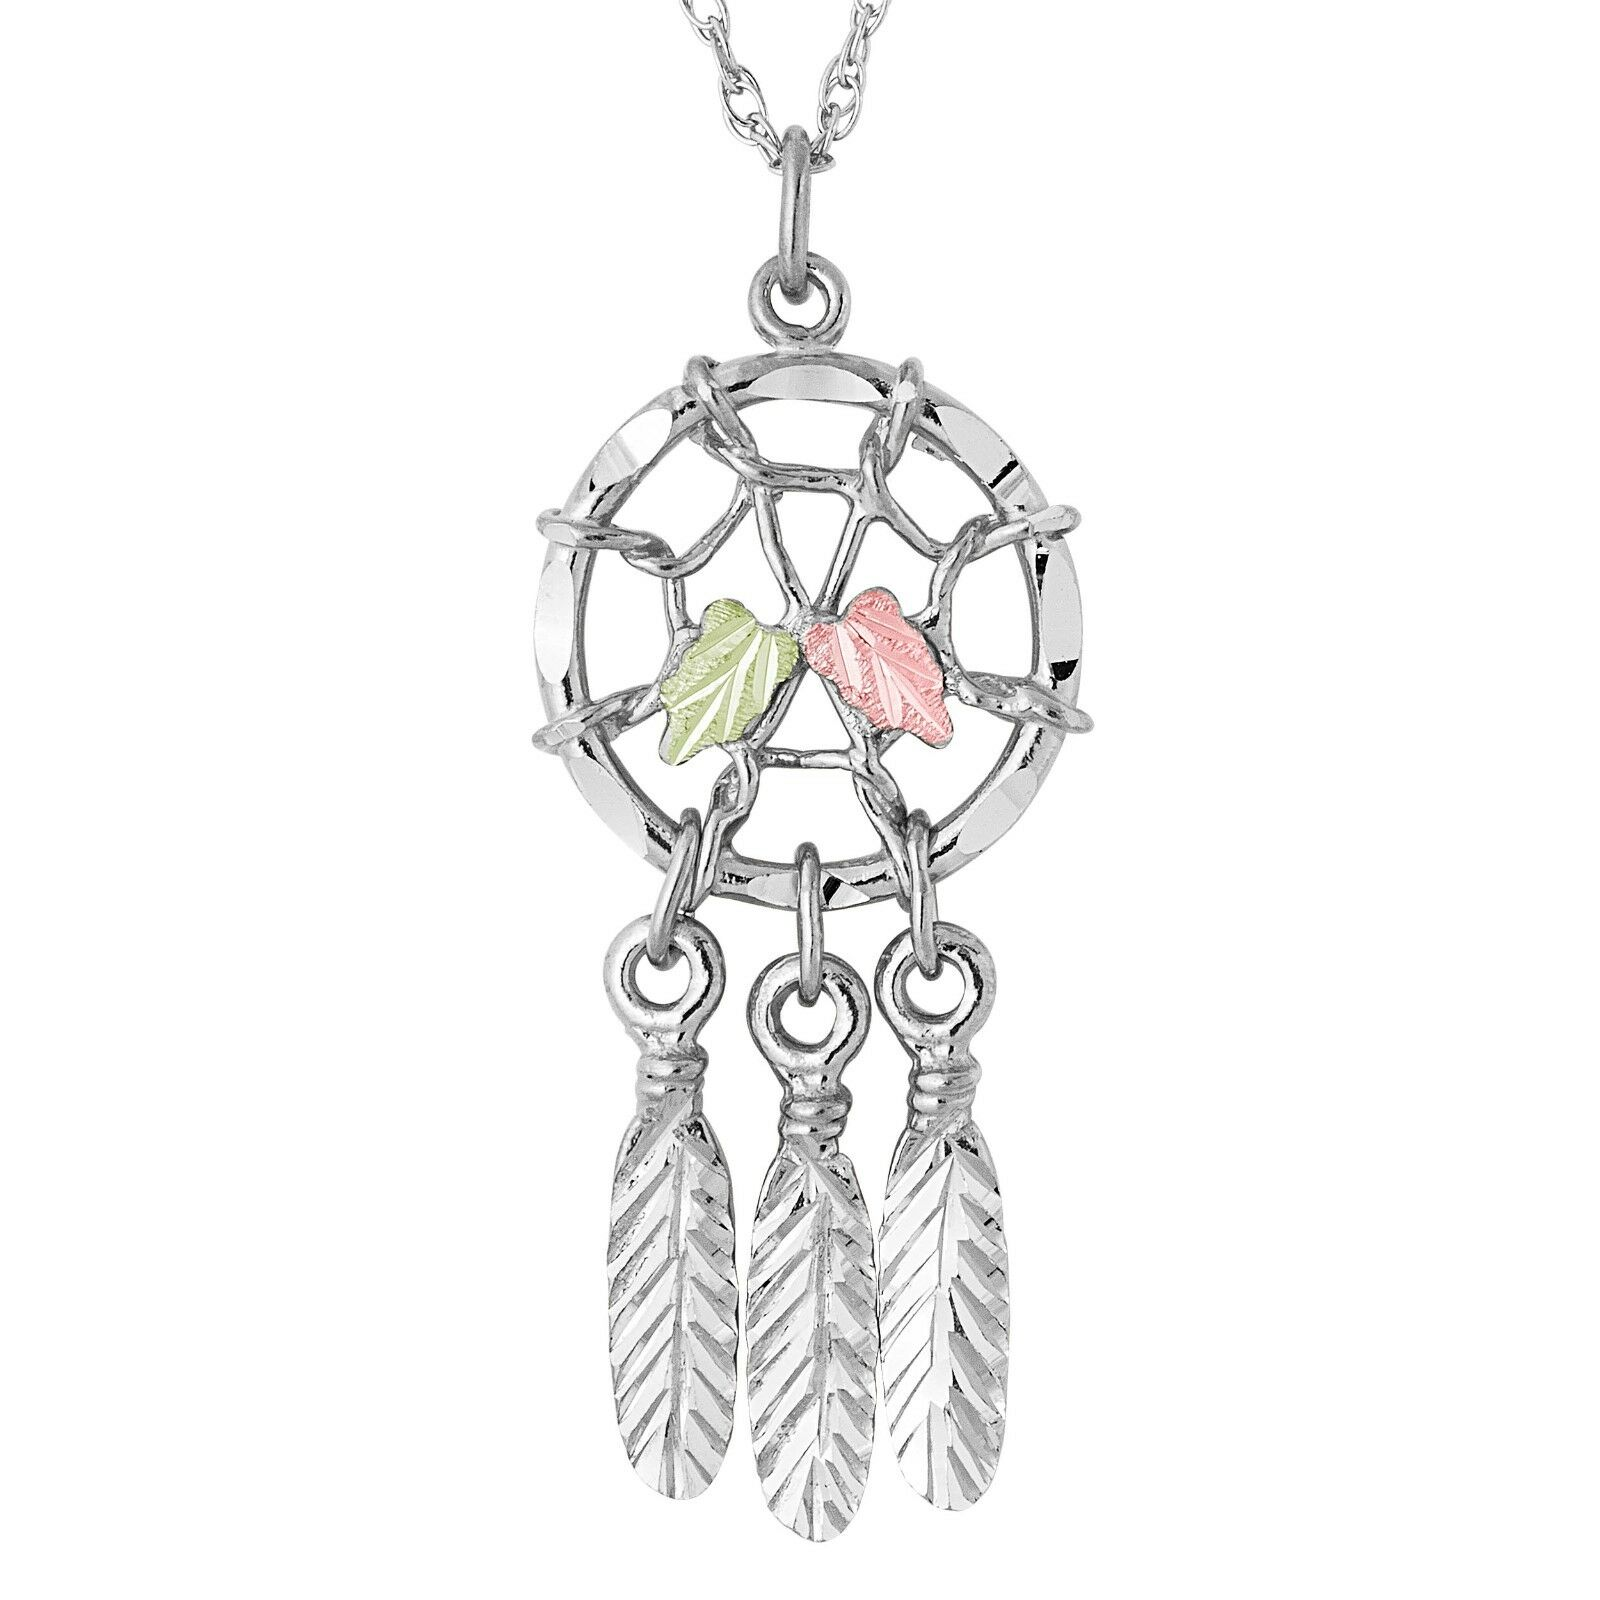 chain dreamcatcher marie dream catcher yasmin necklace pendant shop